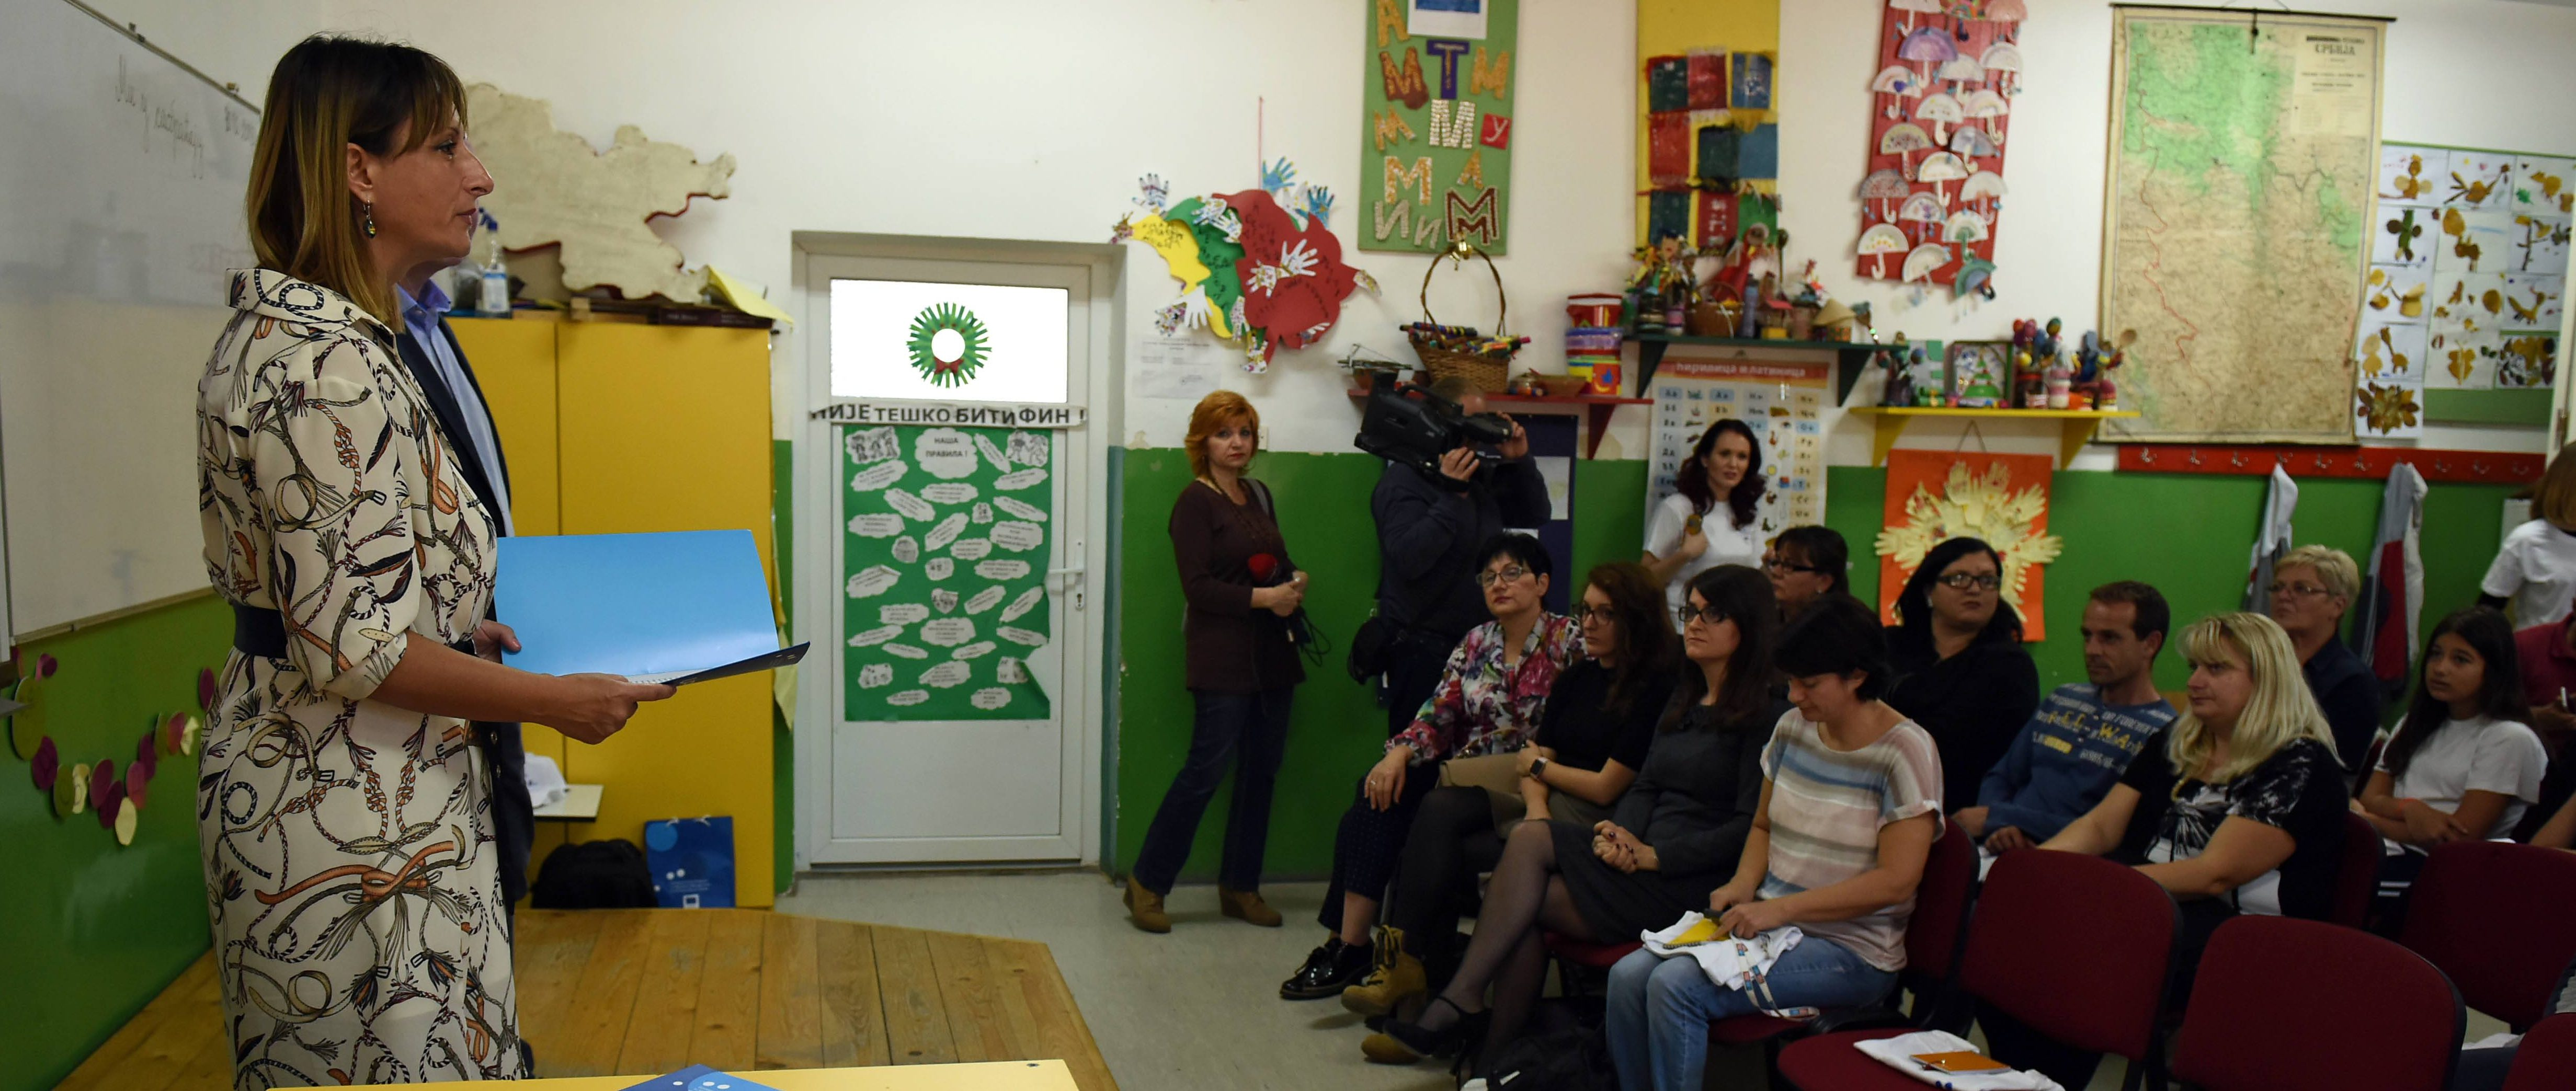 Parents and children socialized in a school in Pirot